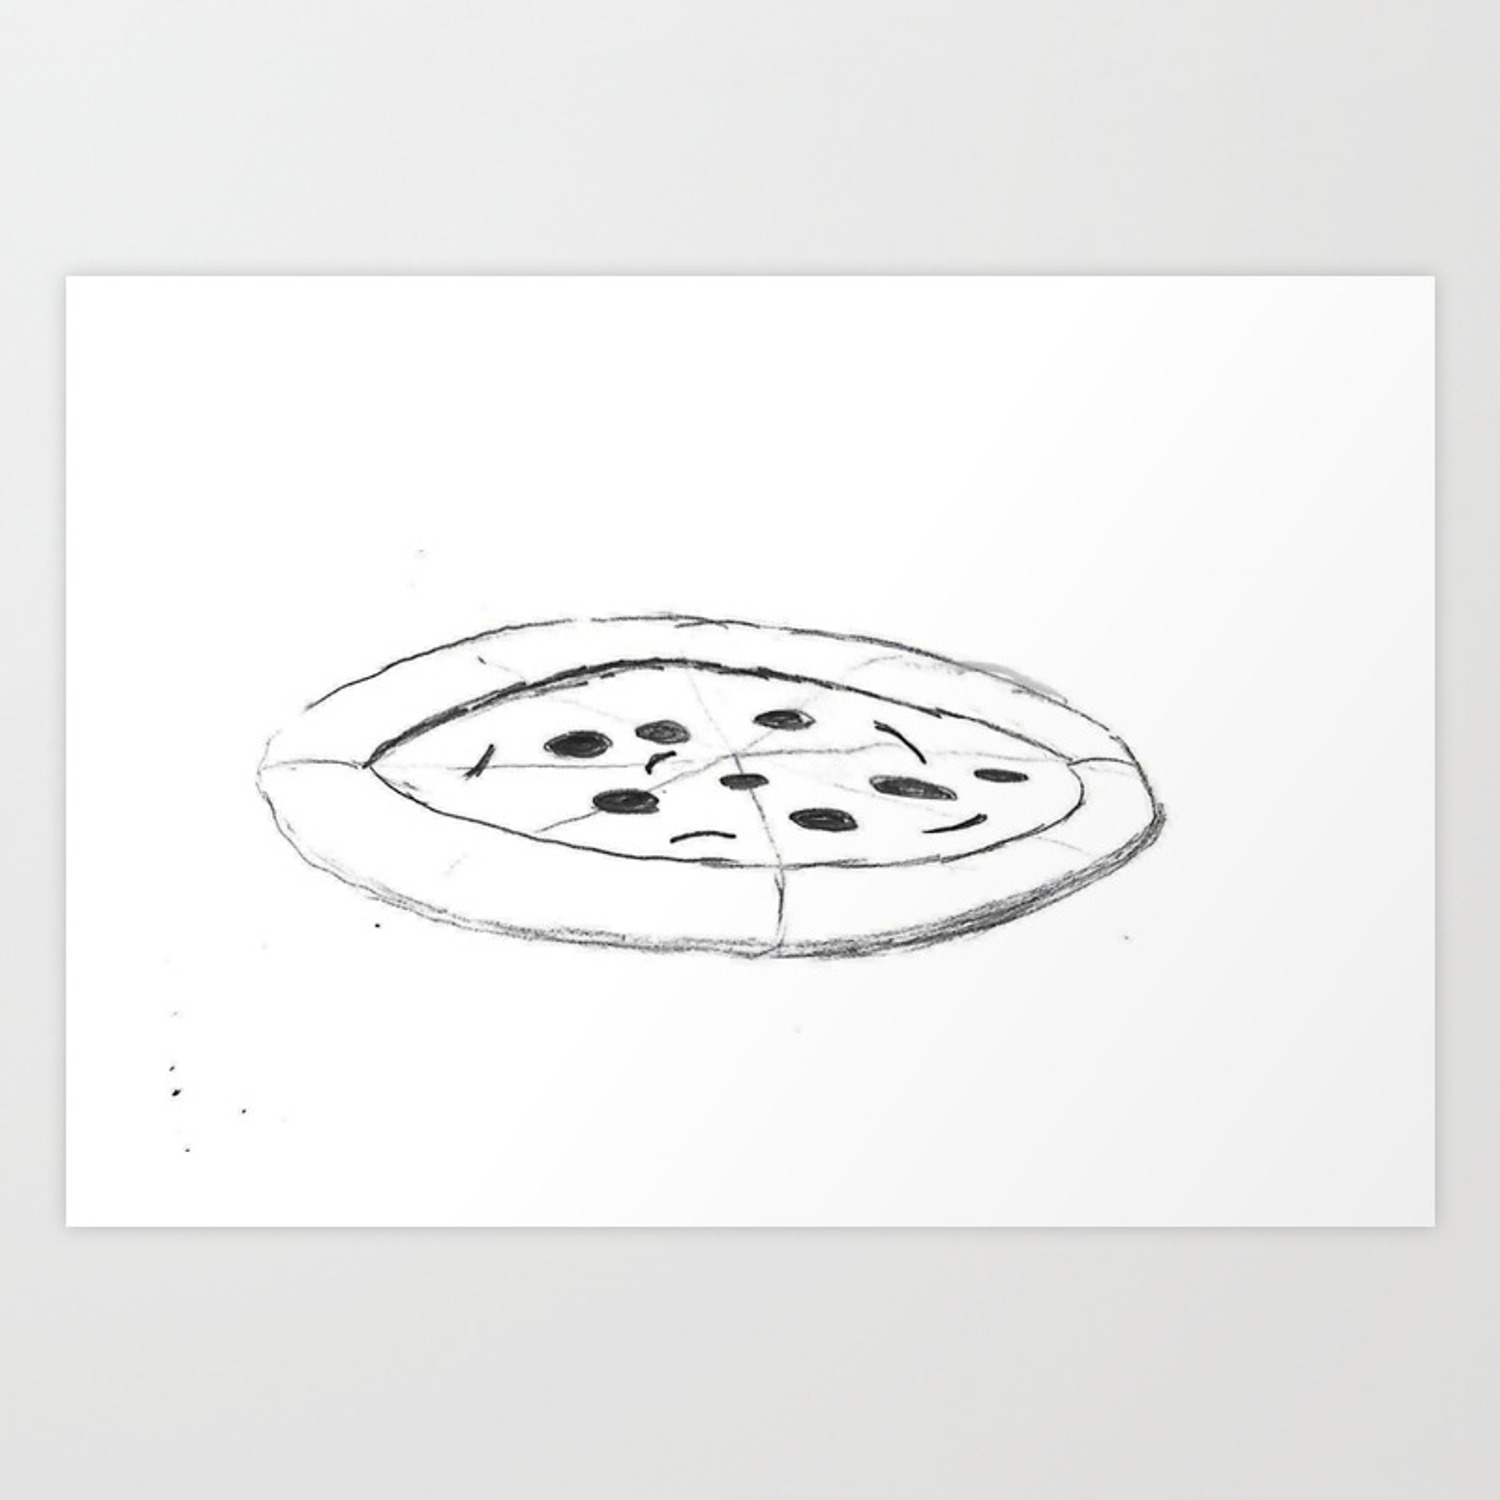 Pizza pencil drawing sketch illustration cartoon black and white comic art foodie art print